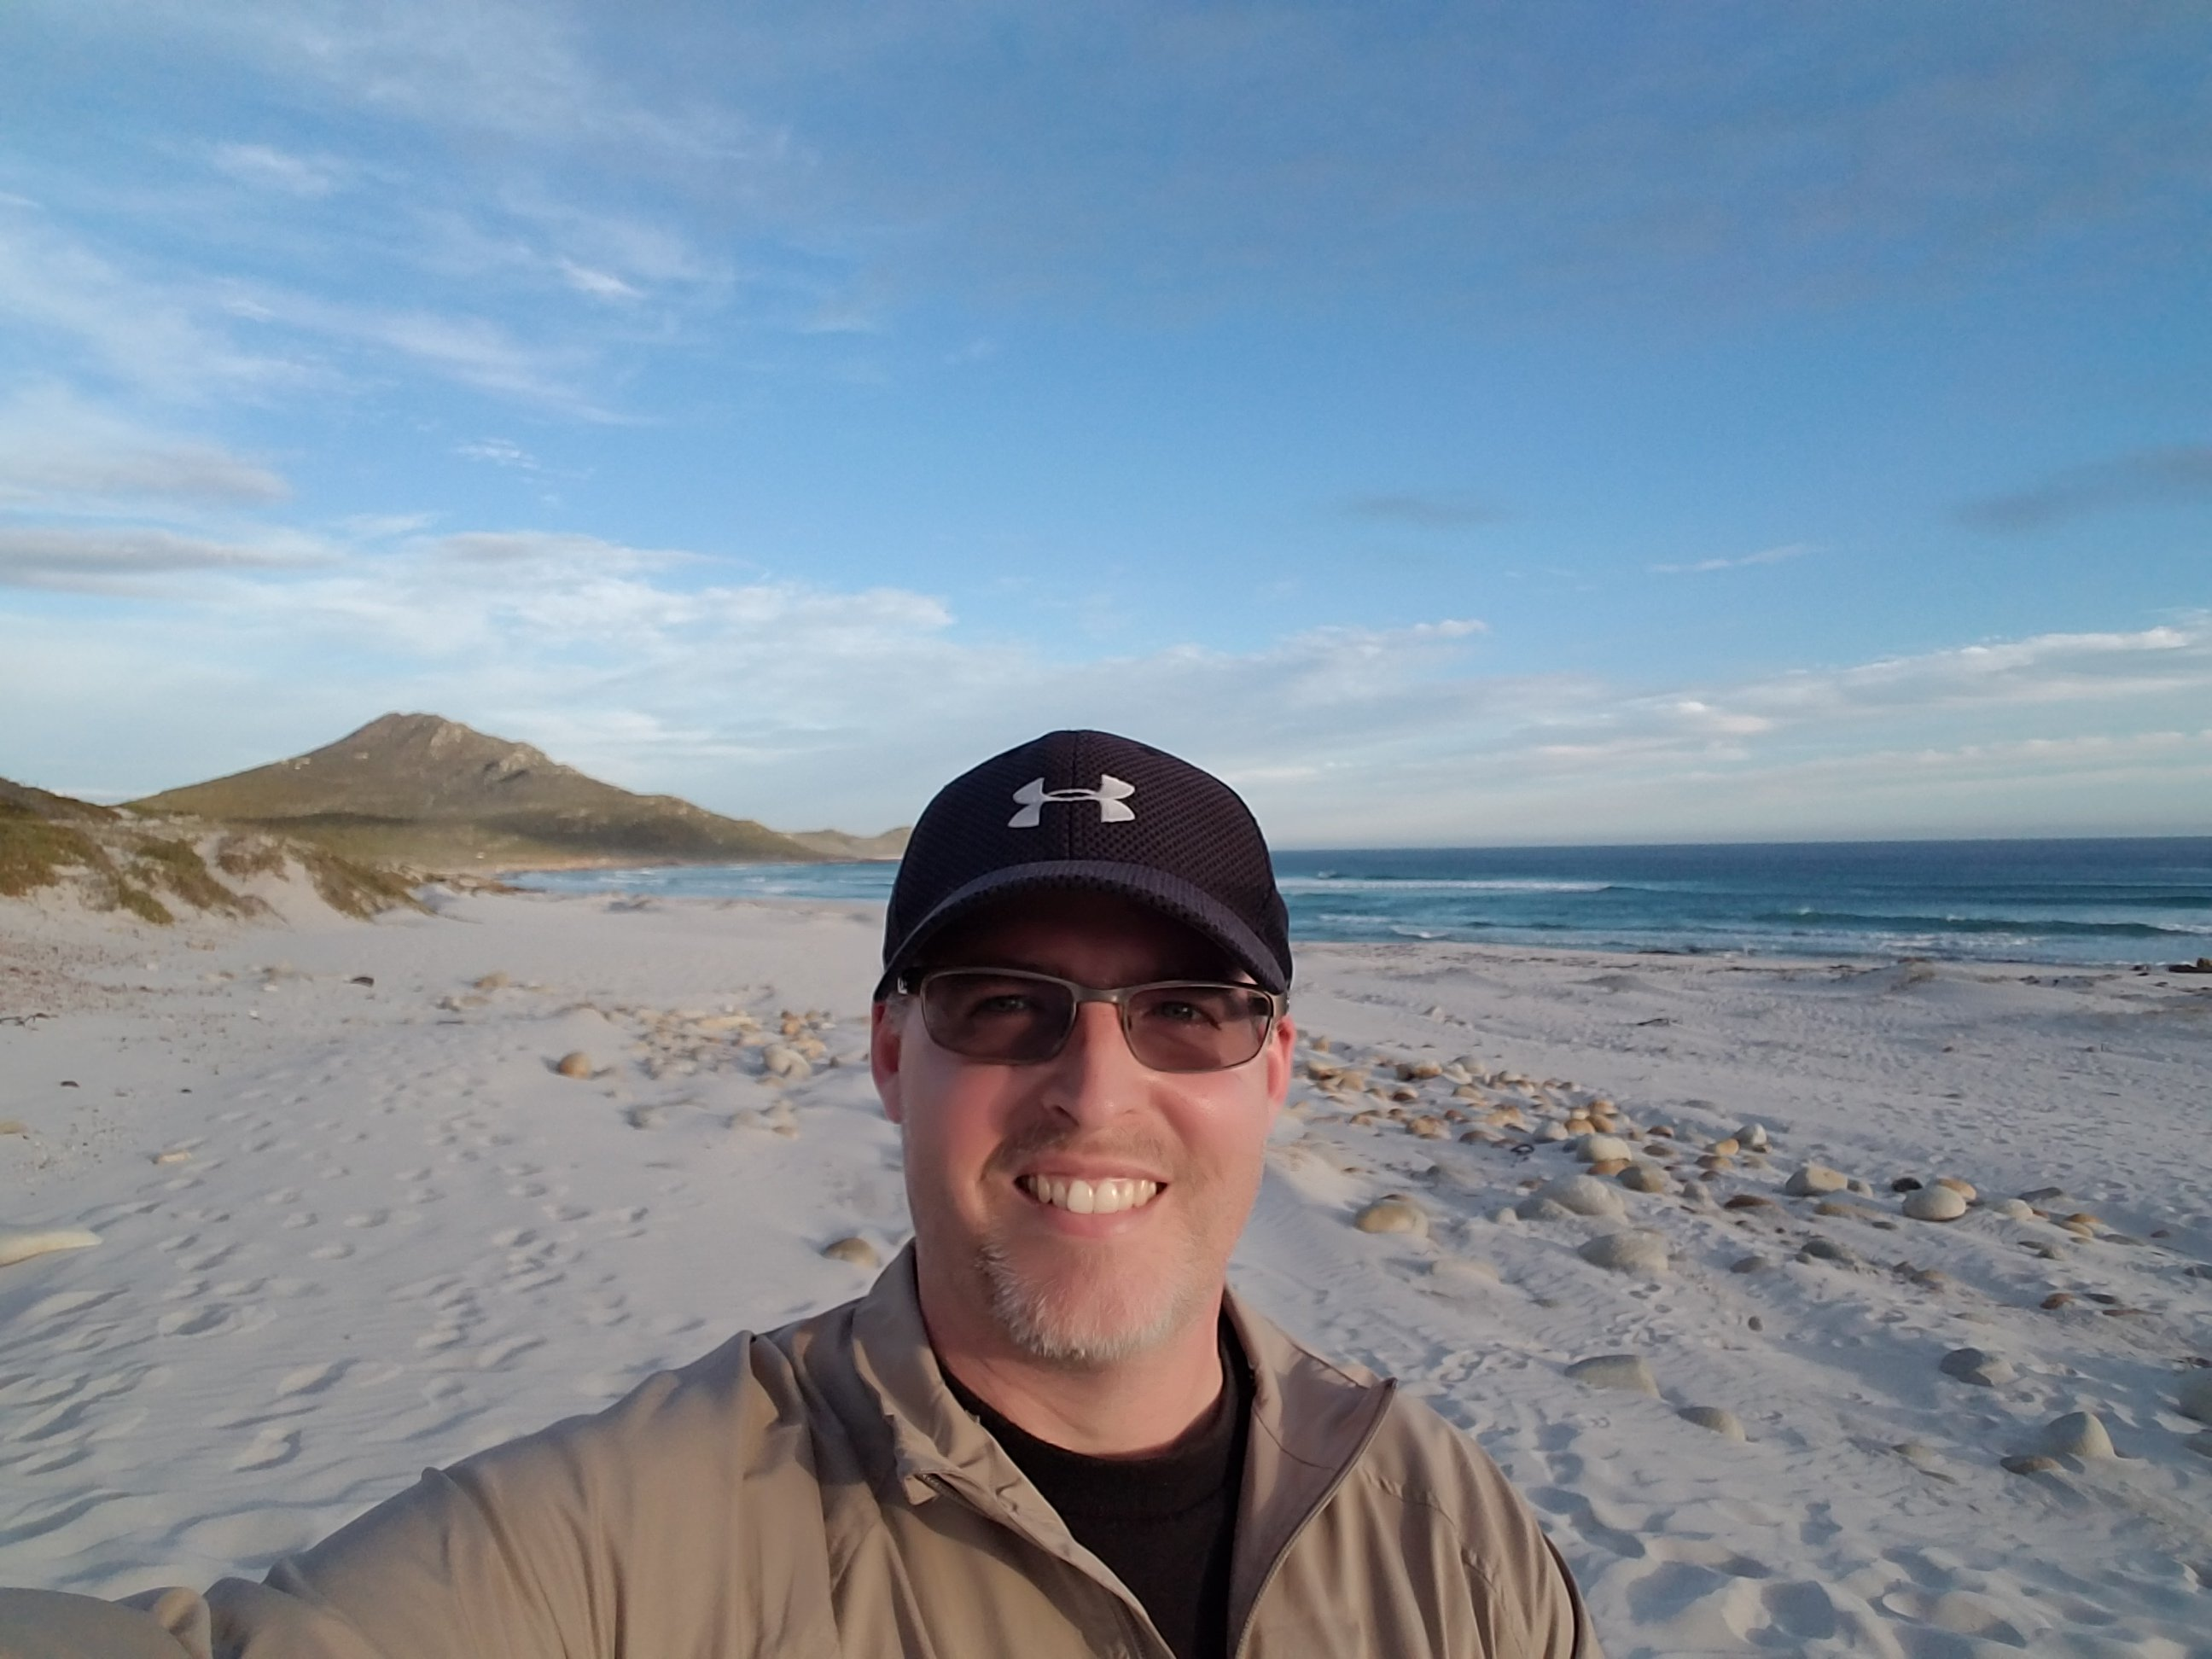 Chris Dromgoole smiles for a selfie on the beach.